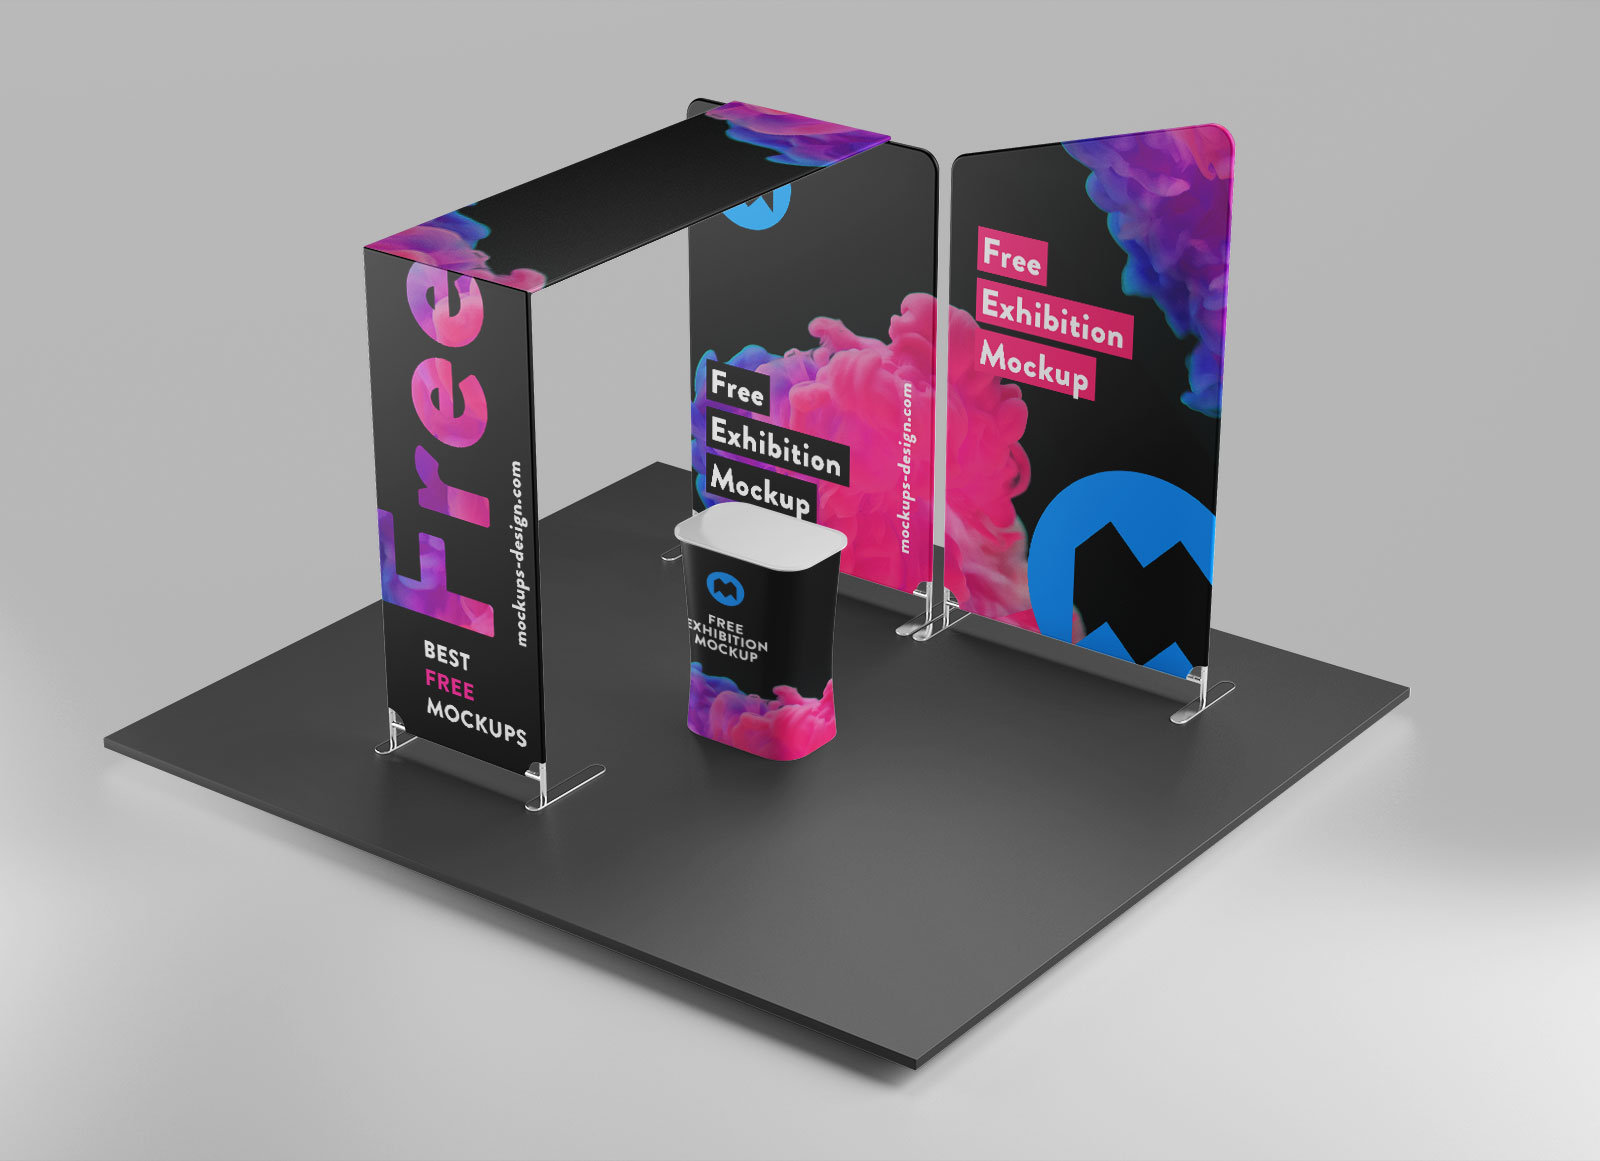 Exhibition Stall Mockup Psd : Free trade show exhibition display stand mockup psd set